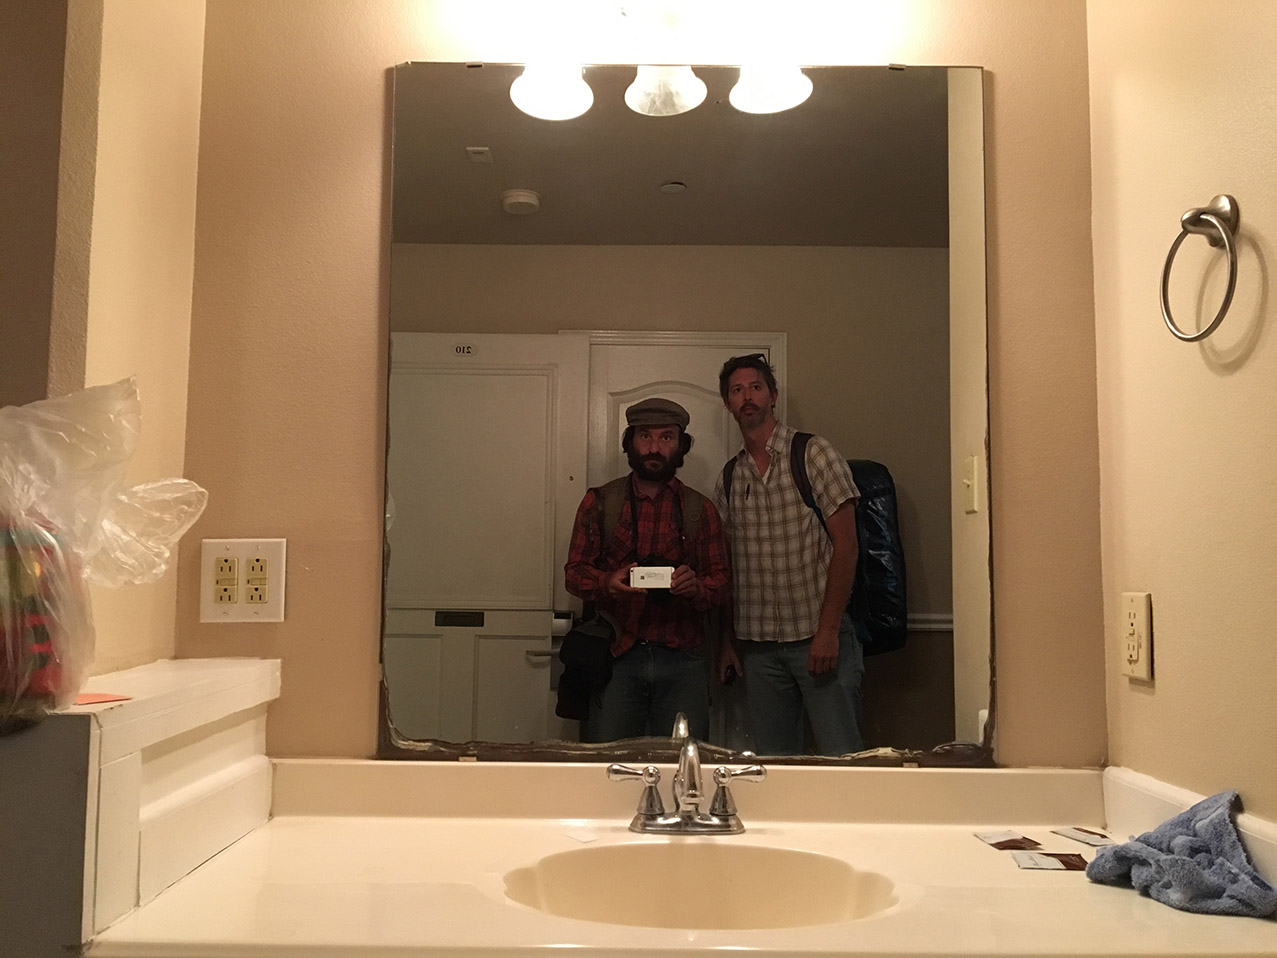 AP photographer Rodrigo Abd, left, and writer Christopher Sherman pose for a selfie inside their hotel room, March 24, 2017, Laredo, Texas. (AP Photo/Rodrigo Abd)